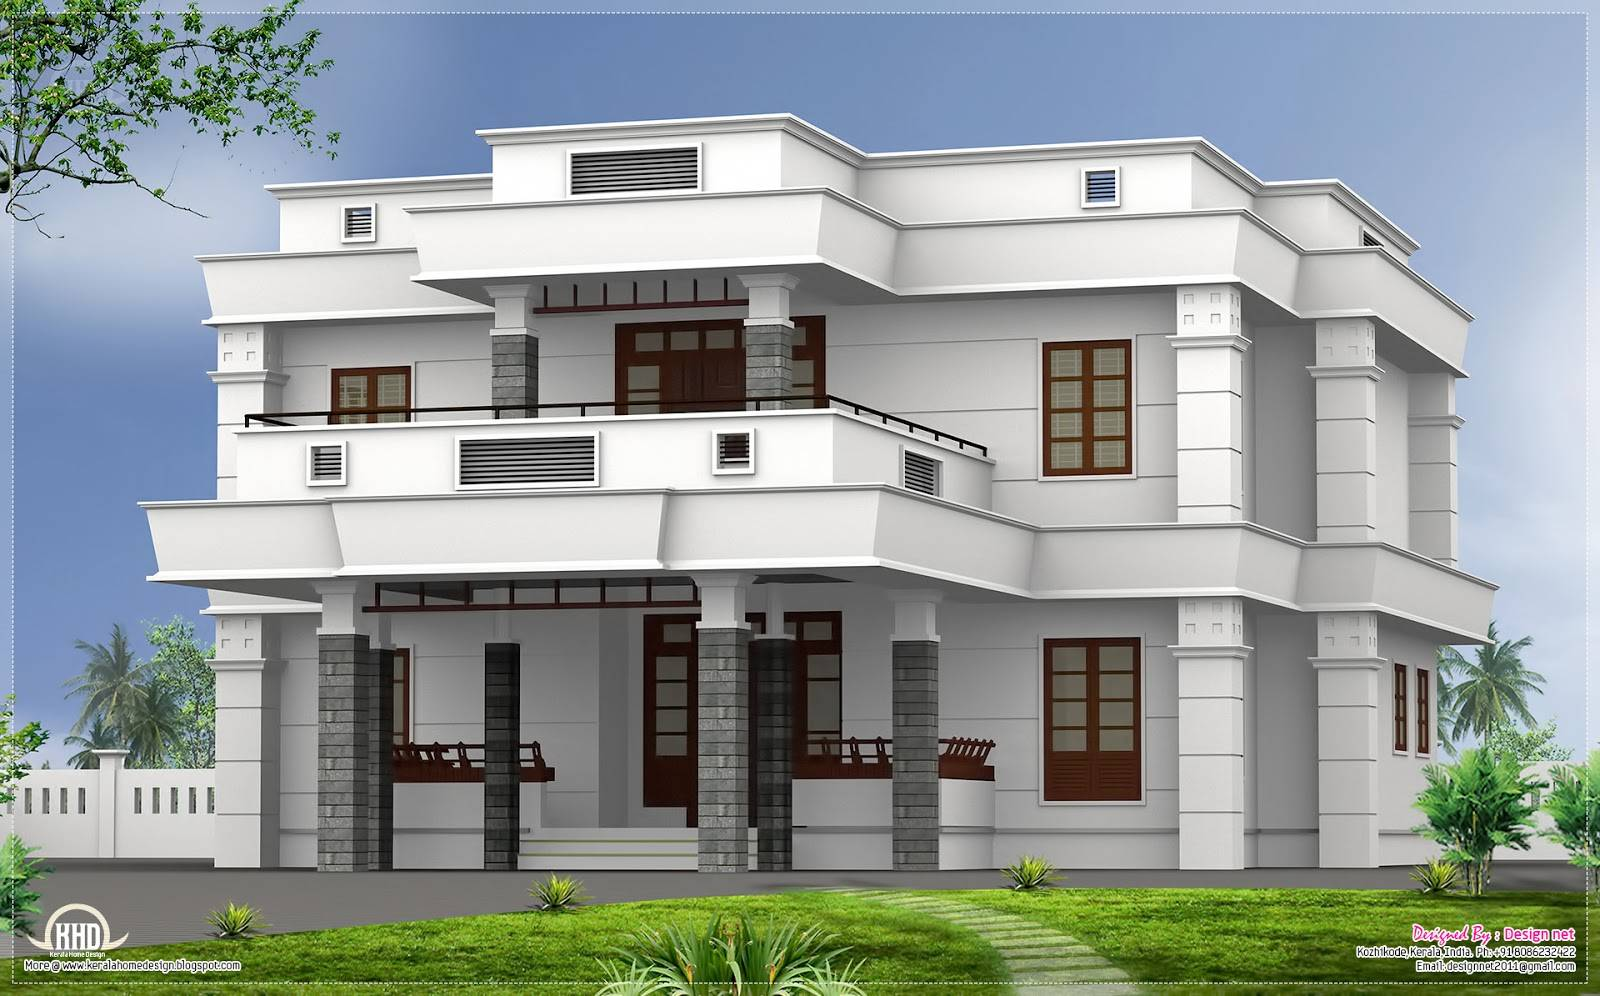 co Friendly Houses Bhk Modern Flat oof House Design - House ... - ^